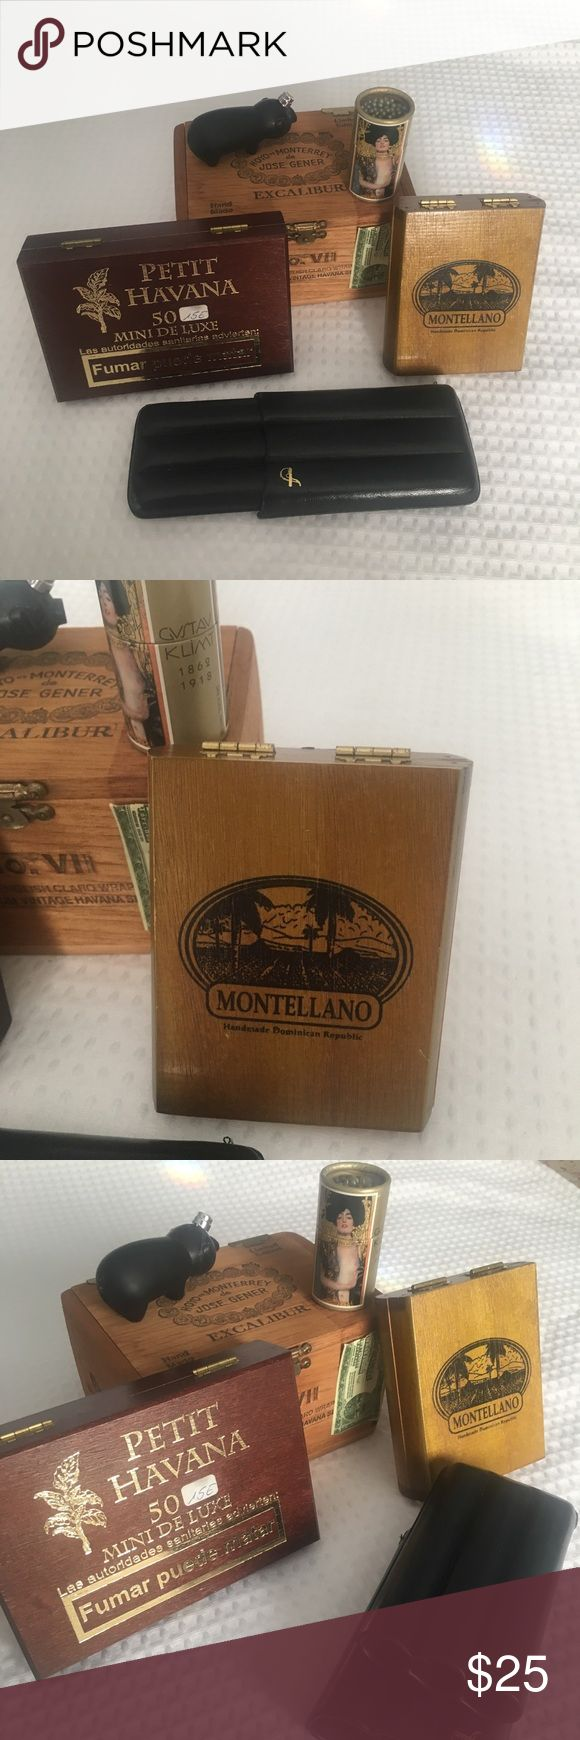 Bundle of Spanish and Dominican Cigar Supplies Leather 3 Cigar Holder, Pig shaped lighter, Collectible Gustav Klimt Matches, Montellano Wooden cigar box from the Dominican Republic, Hoyo de Monterrey Wooden Cigar Box and Petit Havana Box from the Canary Islands. Other